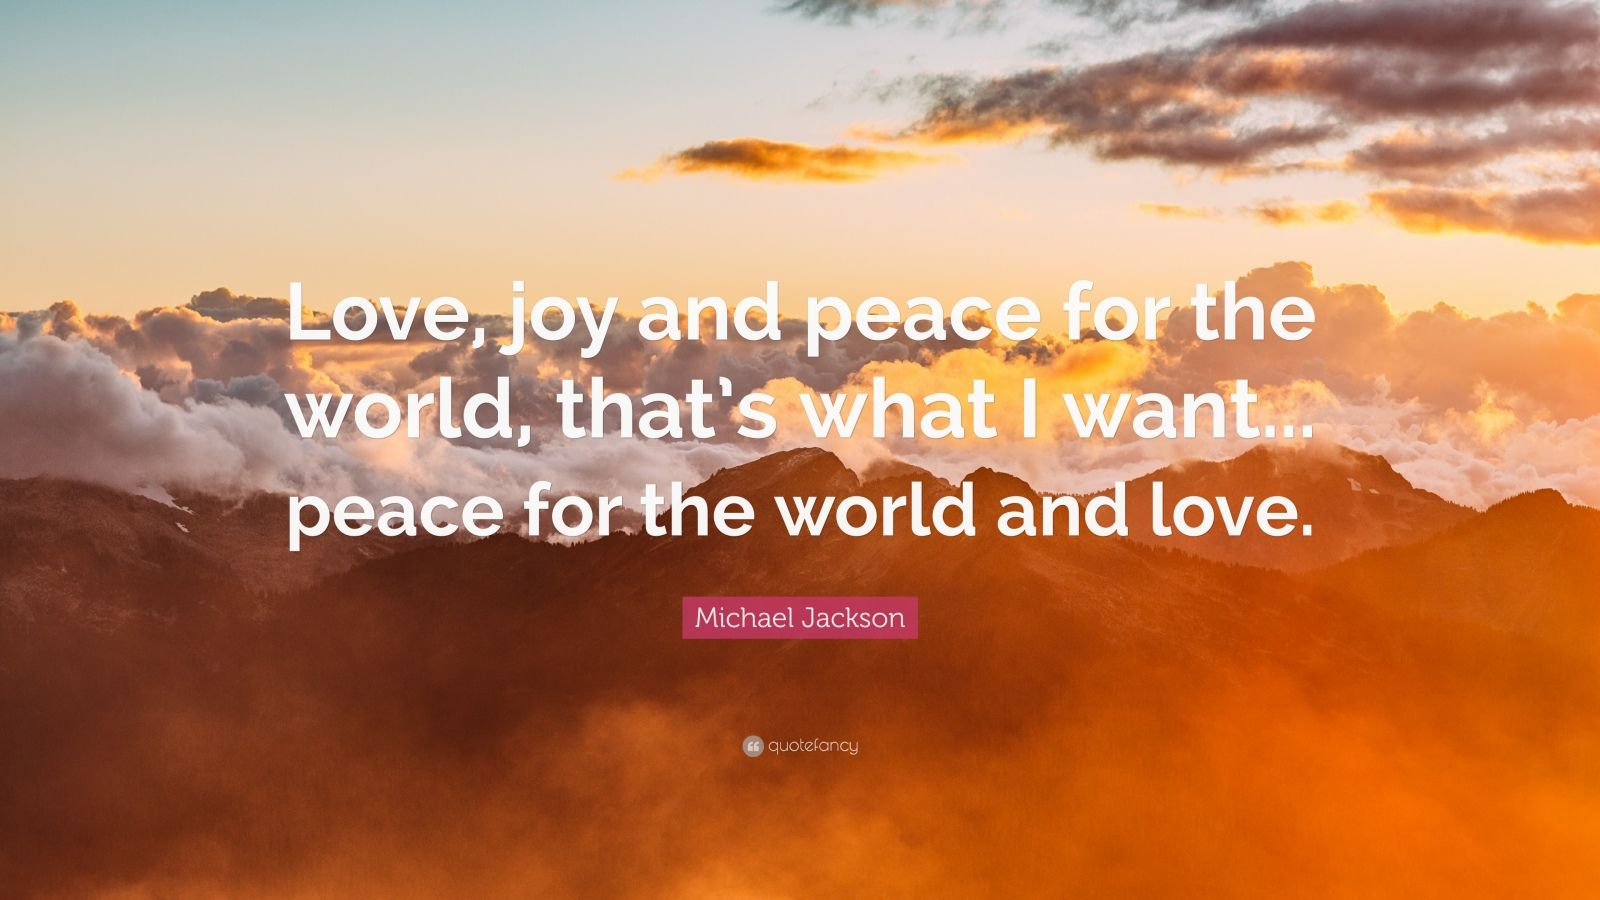 """Michael Jackson Quote: """"Love, joy and peace for the world, that's what I want... peace for the world and love."""""""